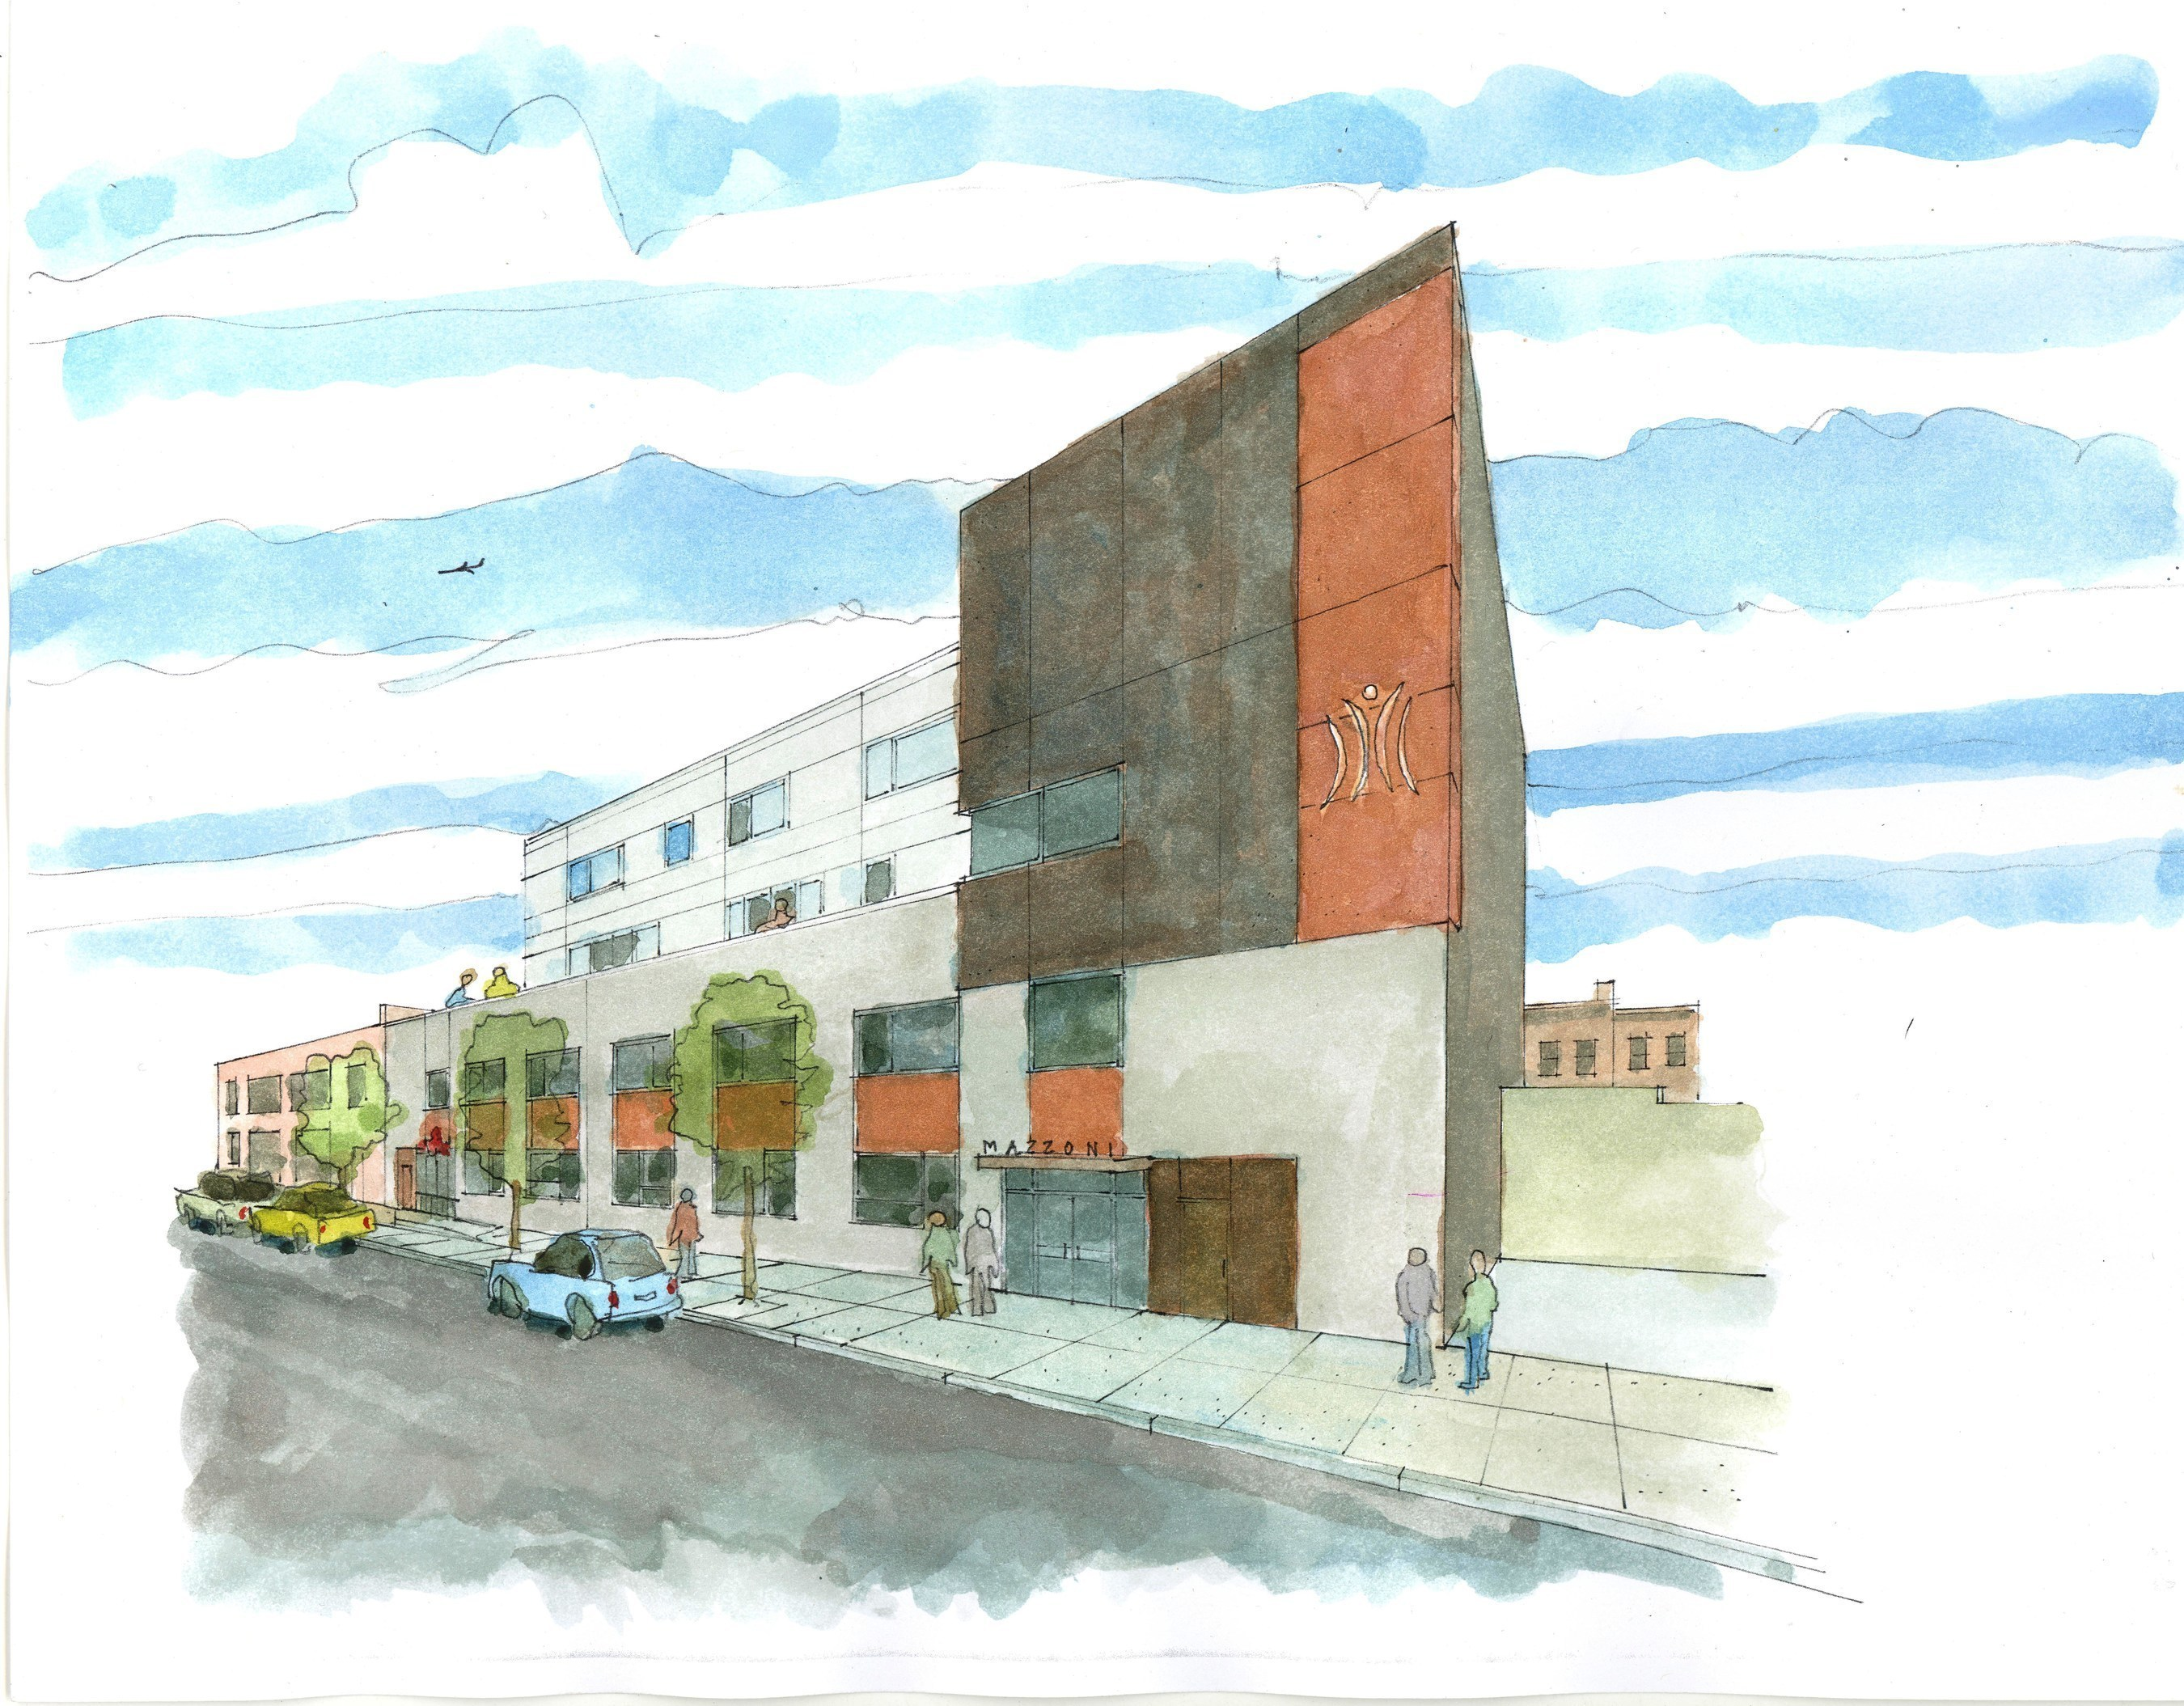 Artist rendering of Mazzoni Center's future home at Broad and Bainbridge Streets in Philadelphia.  Construction on the project is underway, with an anticipated move-in date of June 2017.